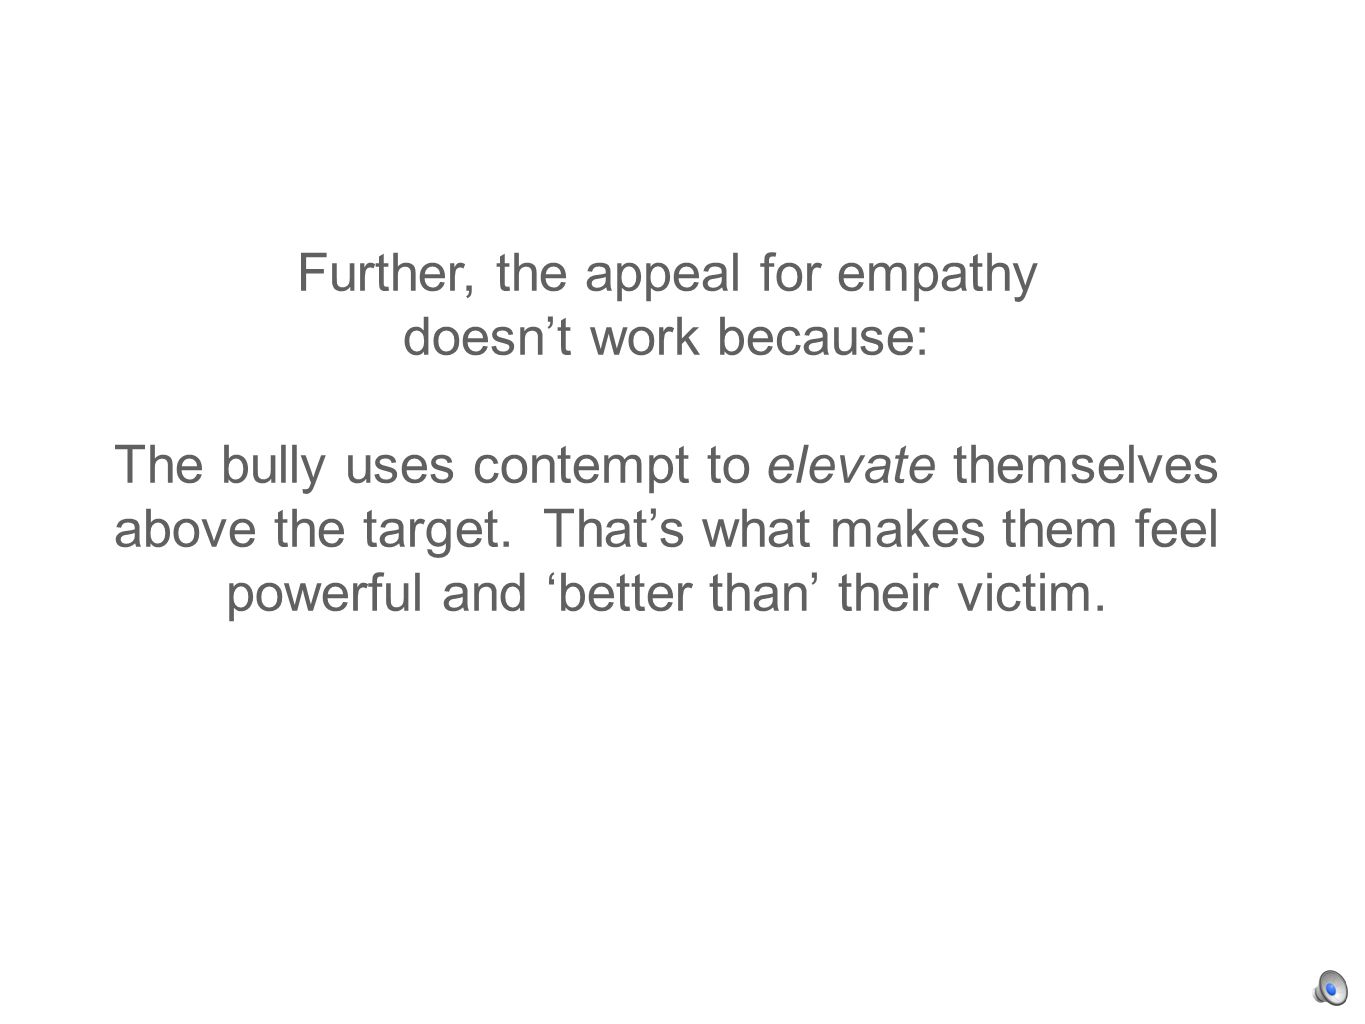 Further, the appeal for empathy doesnt work because: The bully uses contempt to elevate themselves above the target.